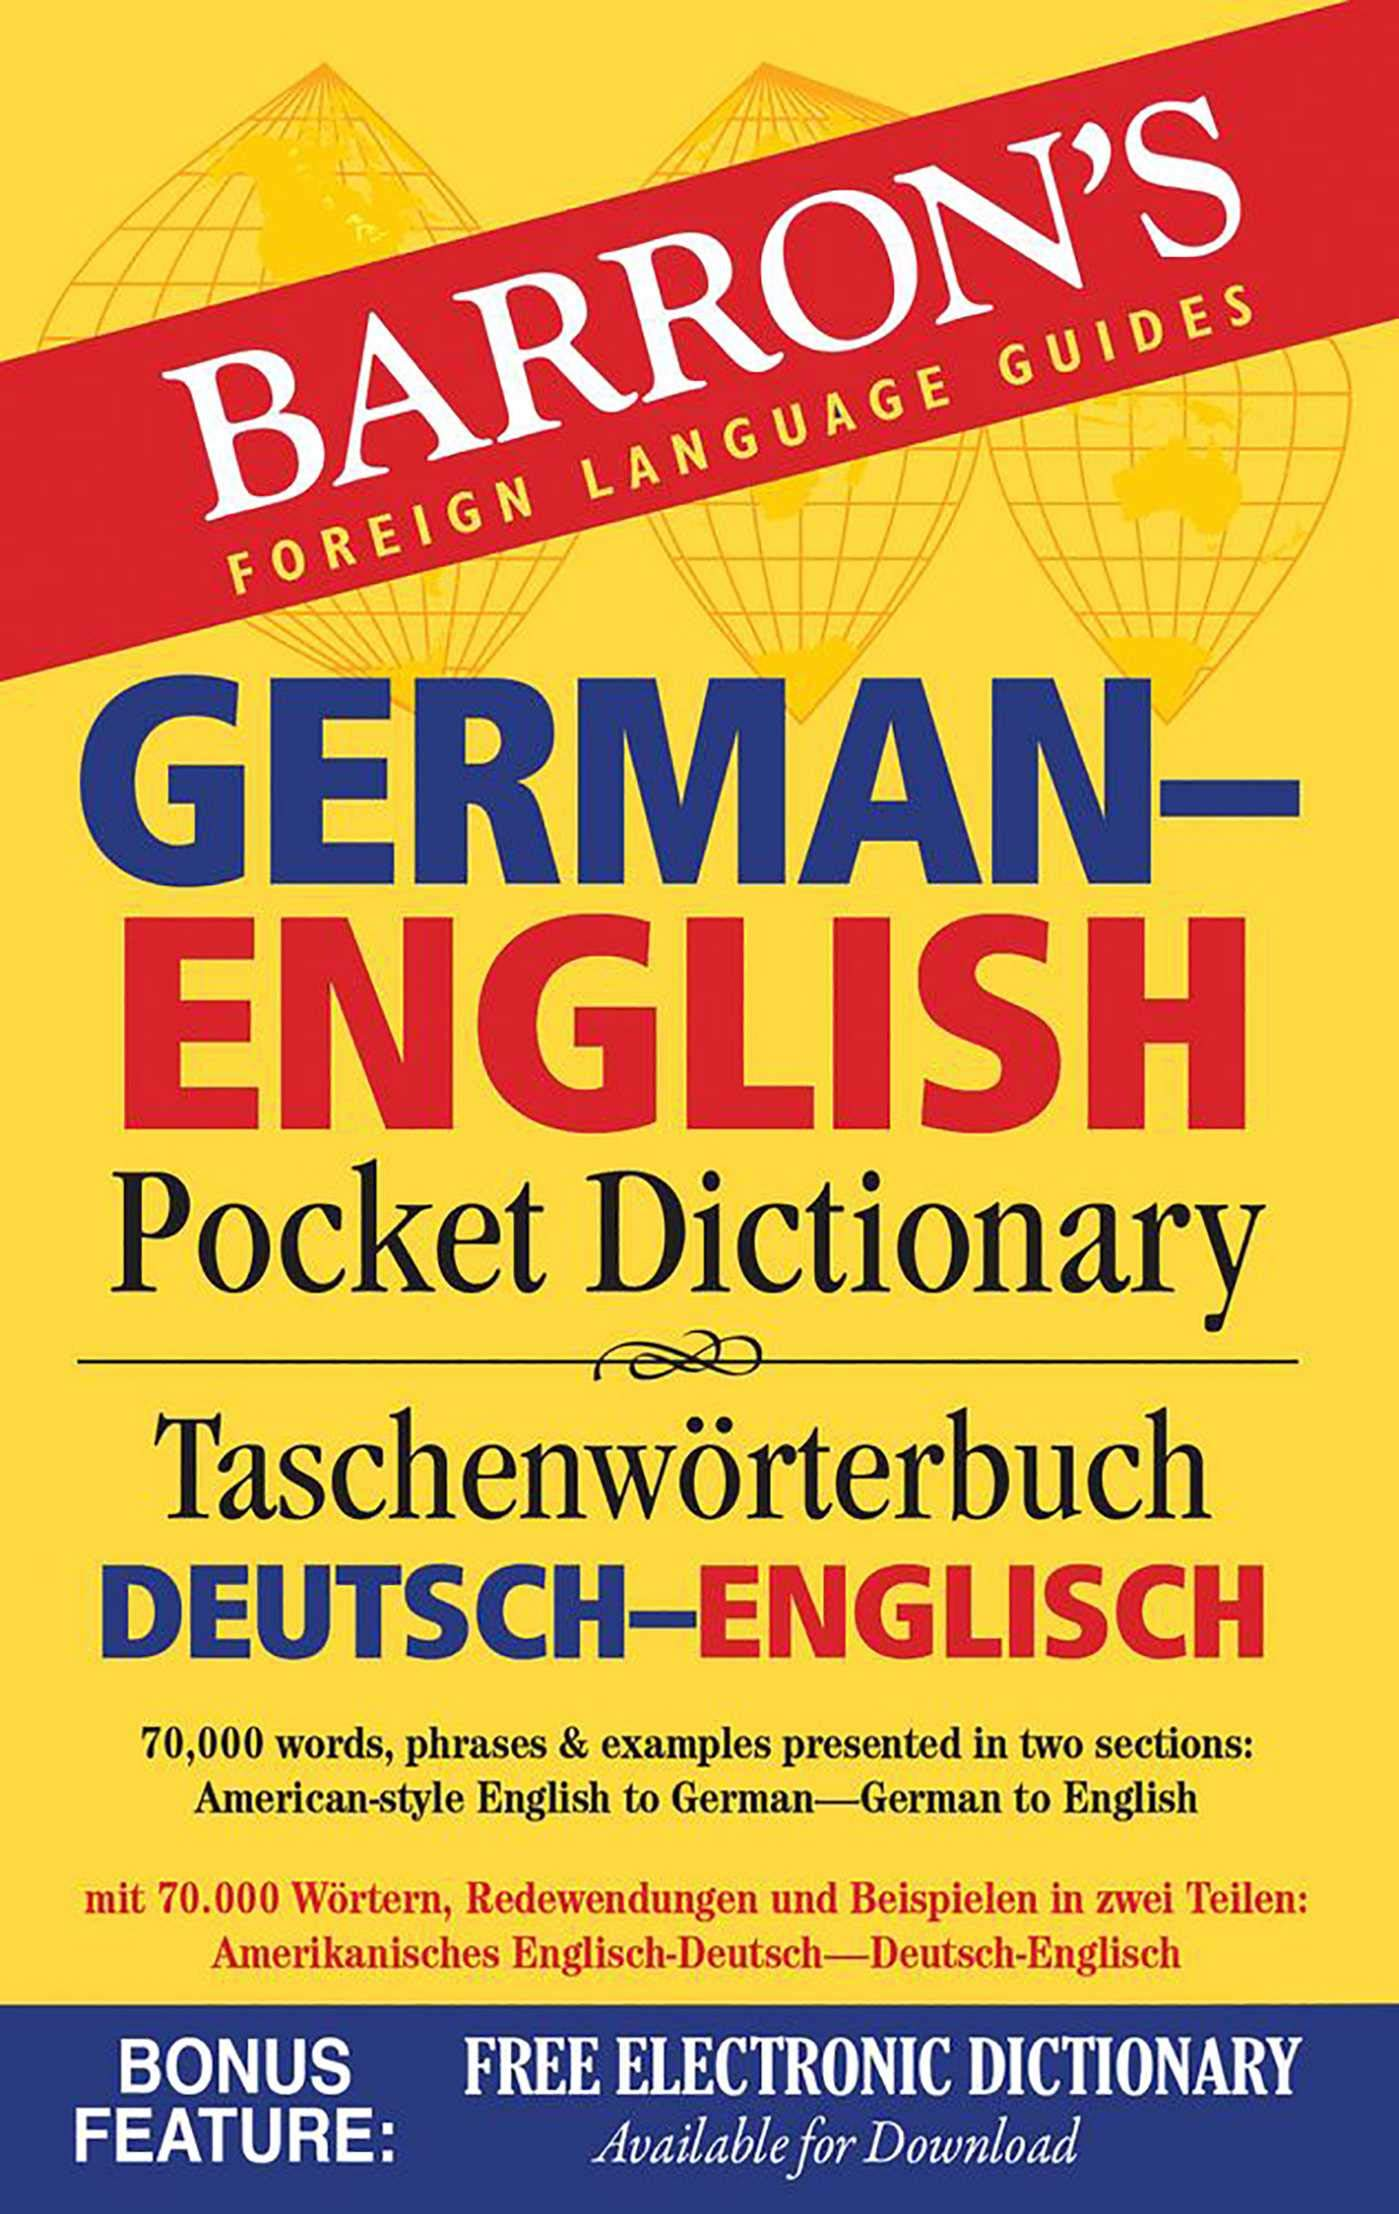 German English Pocket Dictionary 20,20 words, phrases & examples ...